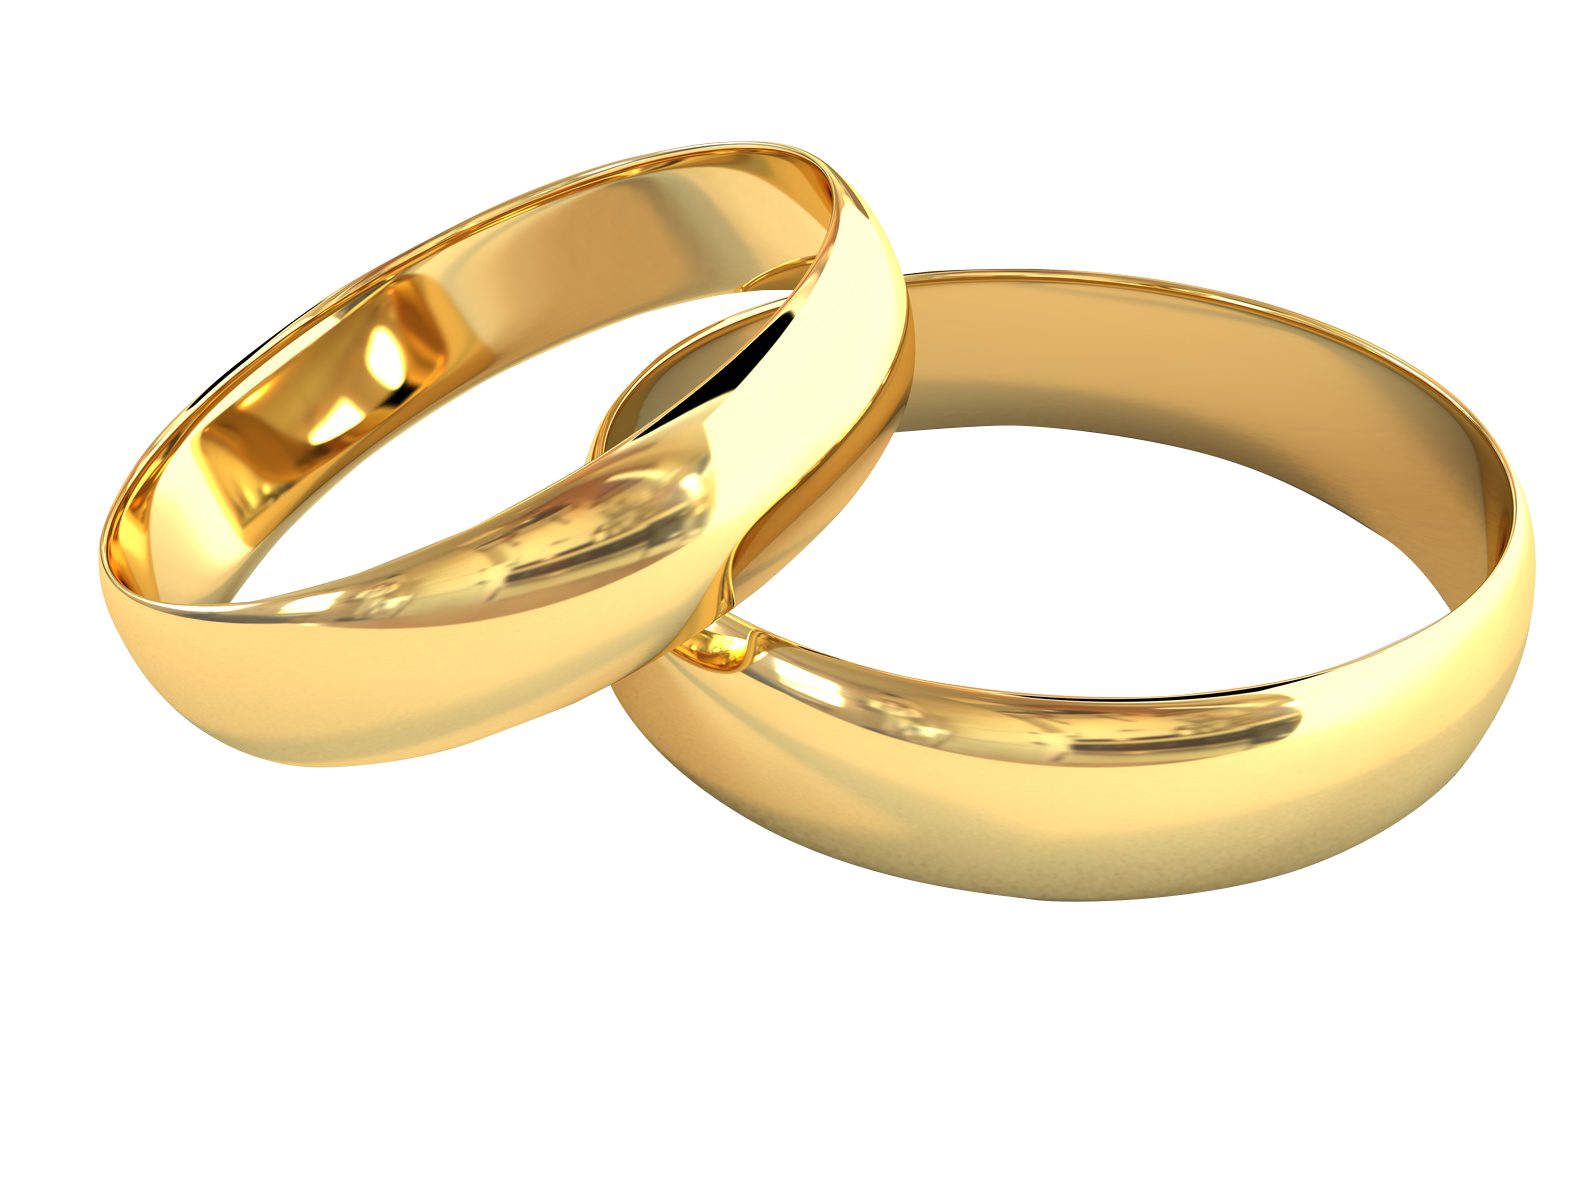 Ring clipart wedding vows #10